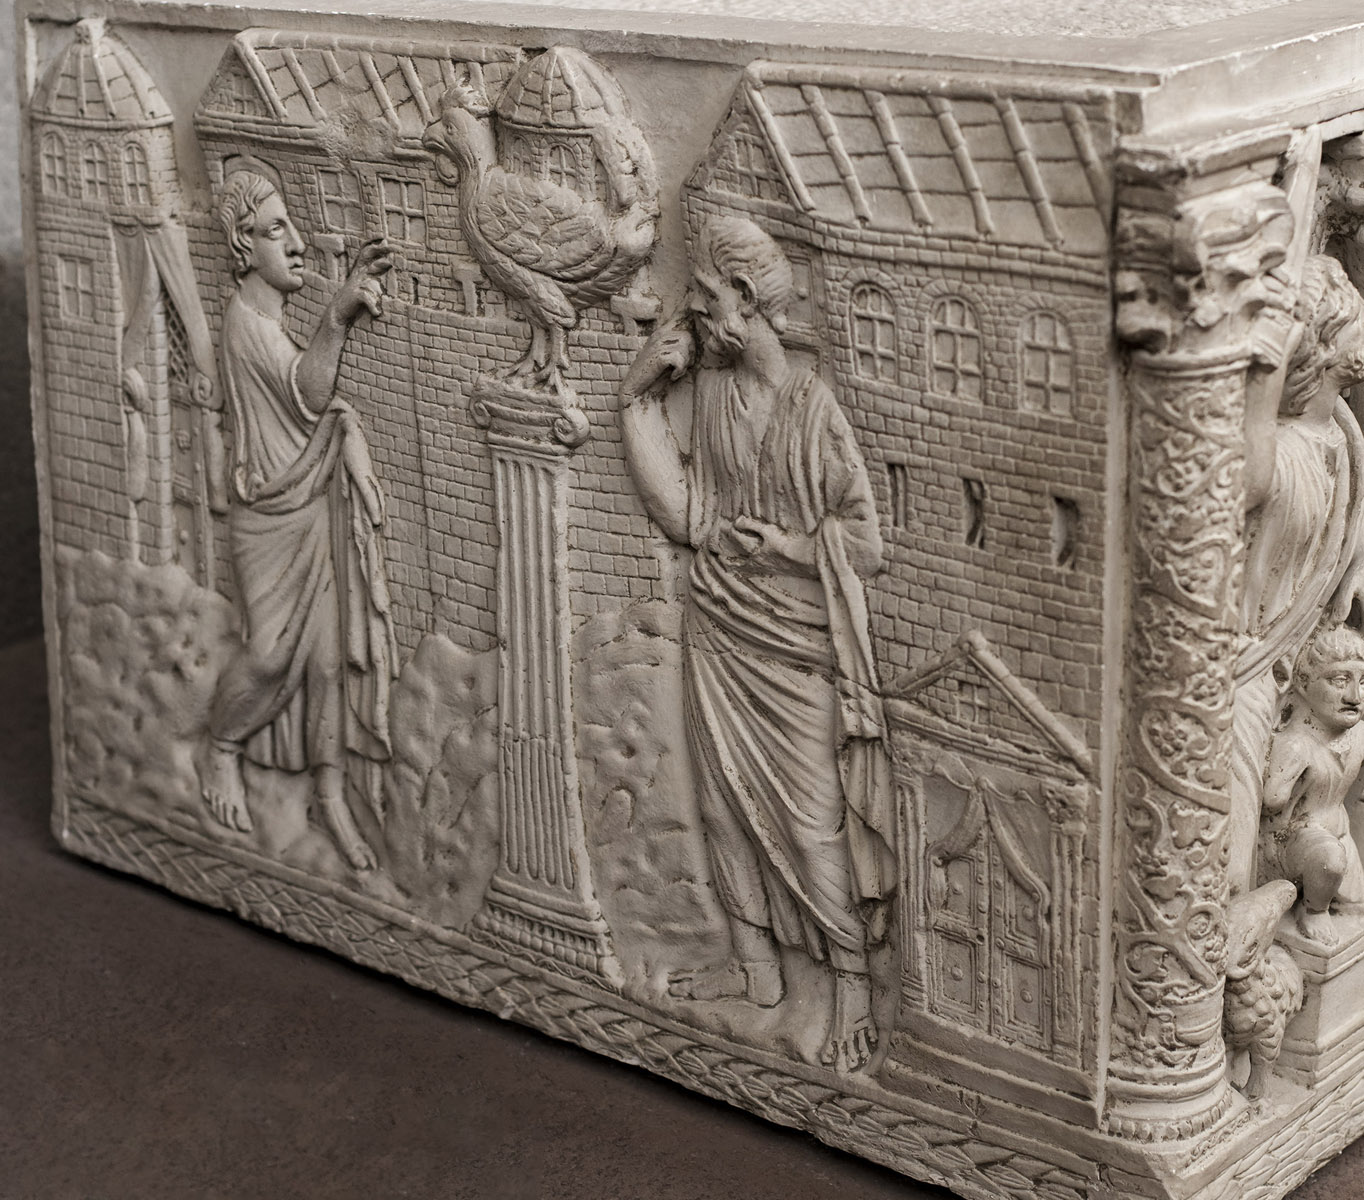 Cast of a sarcophagus with Traditio Legis in the Vatican Grottoes. Left side: Prediction of Peter's denial. Original (inv. 174): marble, c. 350—375 CE. Inv. No. 31528 (ex XXV). Rome, Vatican Museums, Pio-Christian Museum